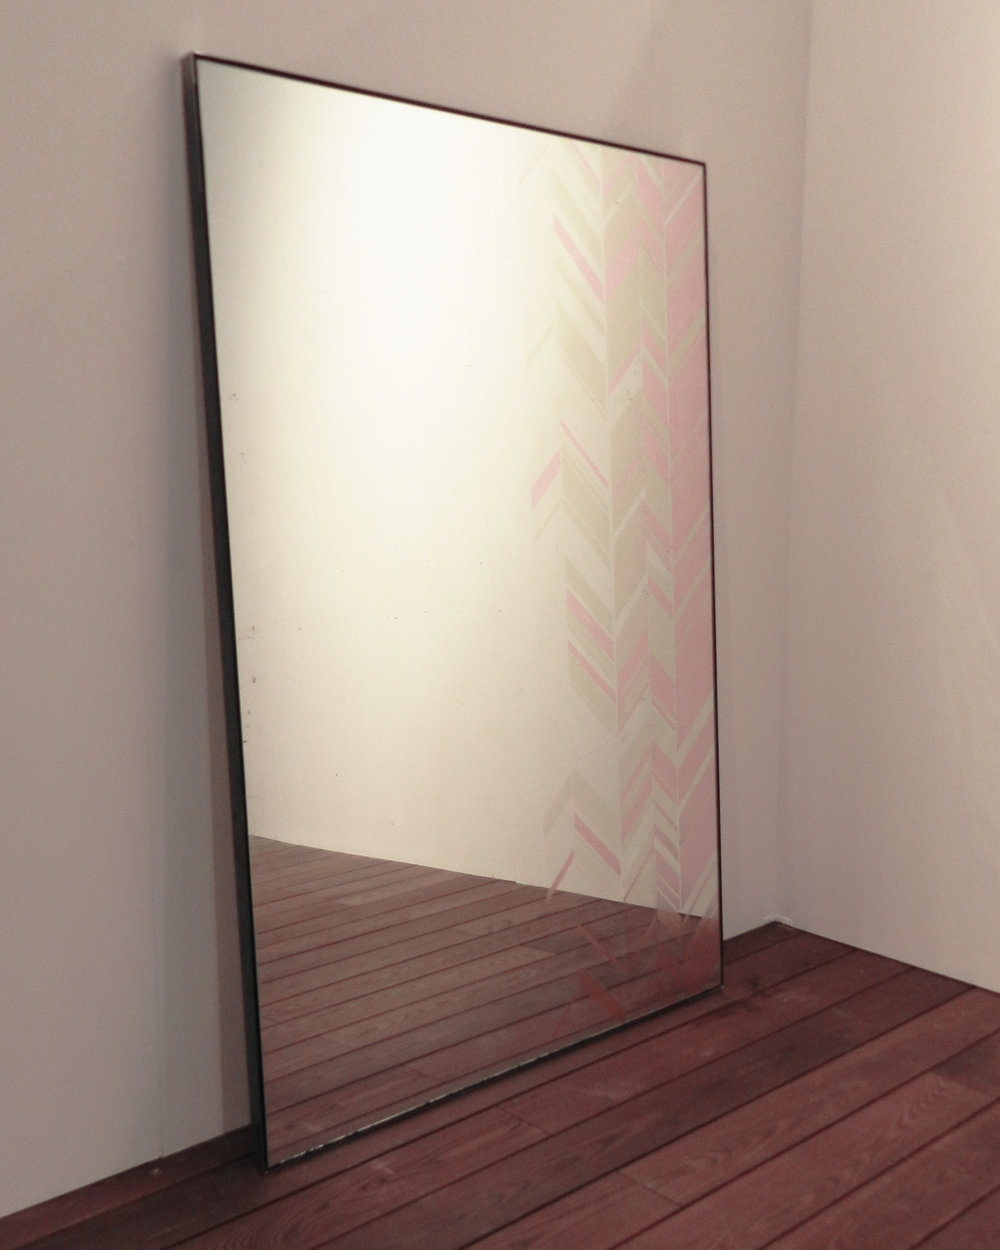 Chevron verre eglomise mirror - dyed pink silver leaf, silver leaf and white gold leaf.